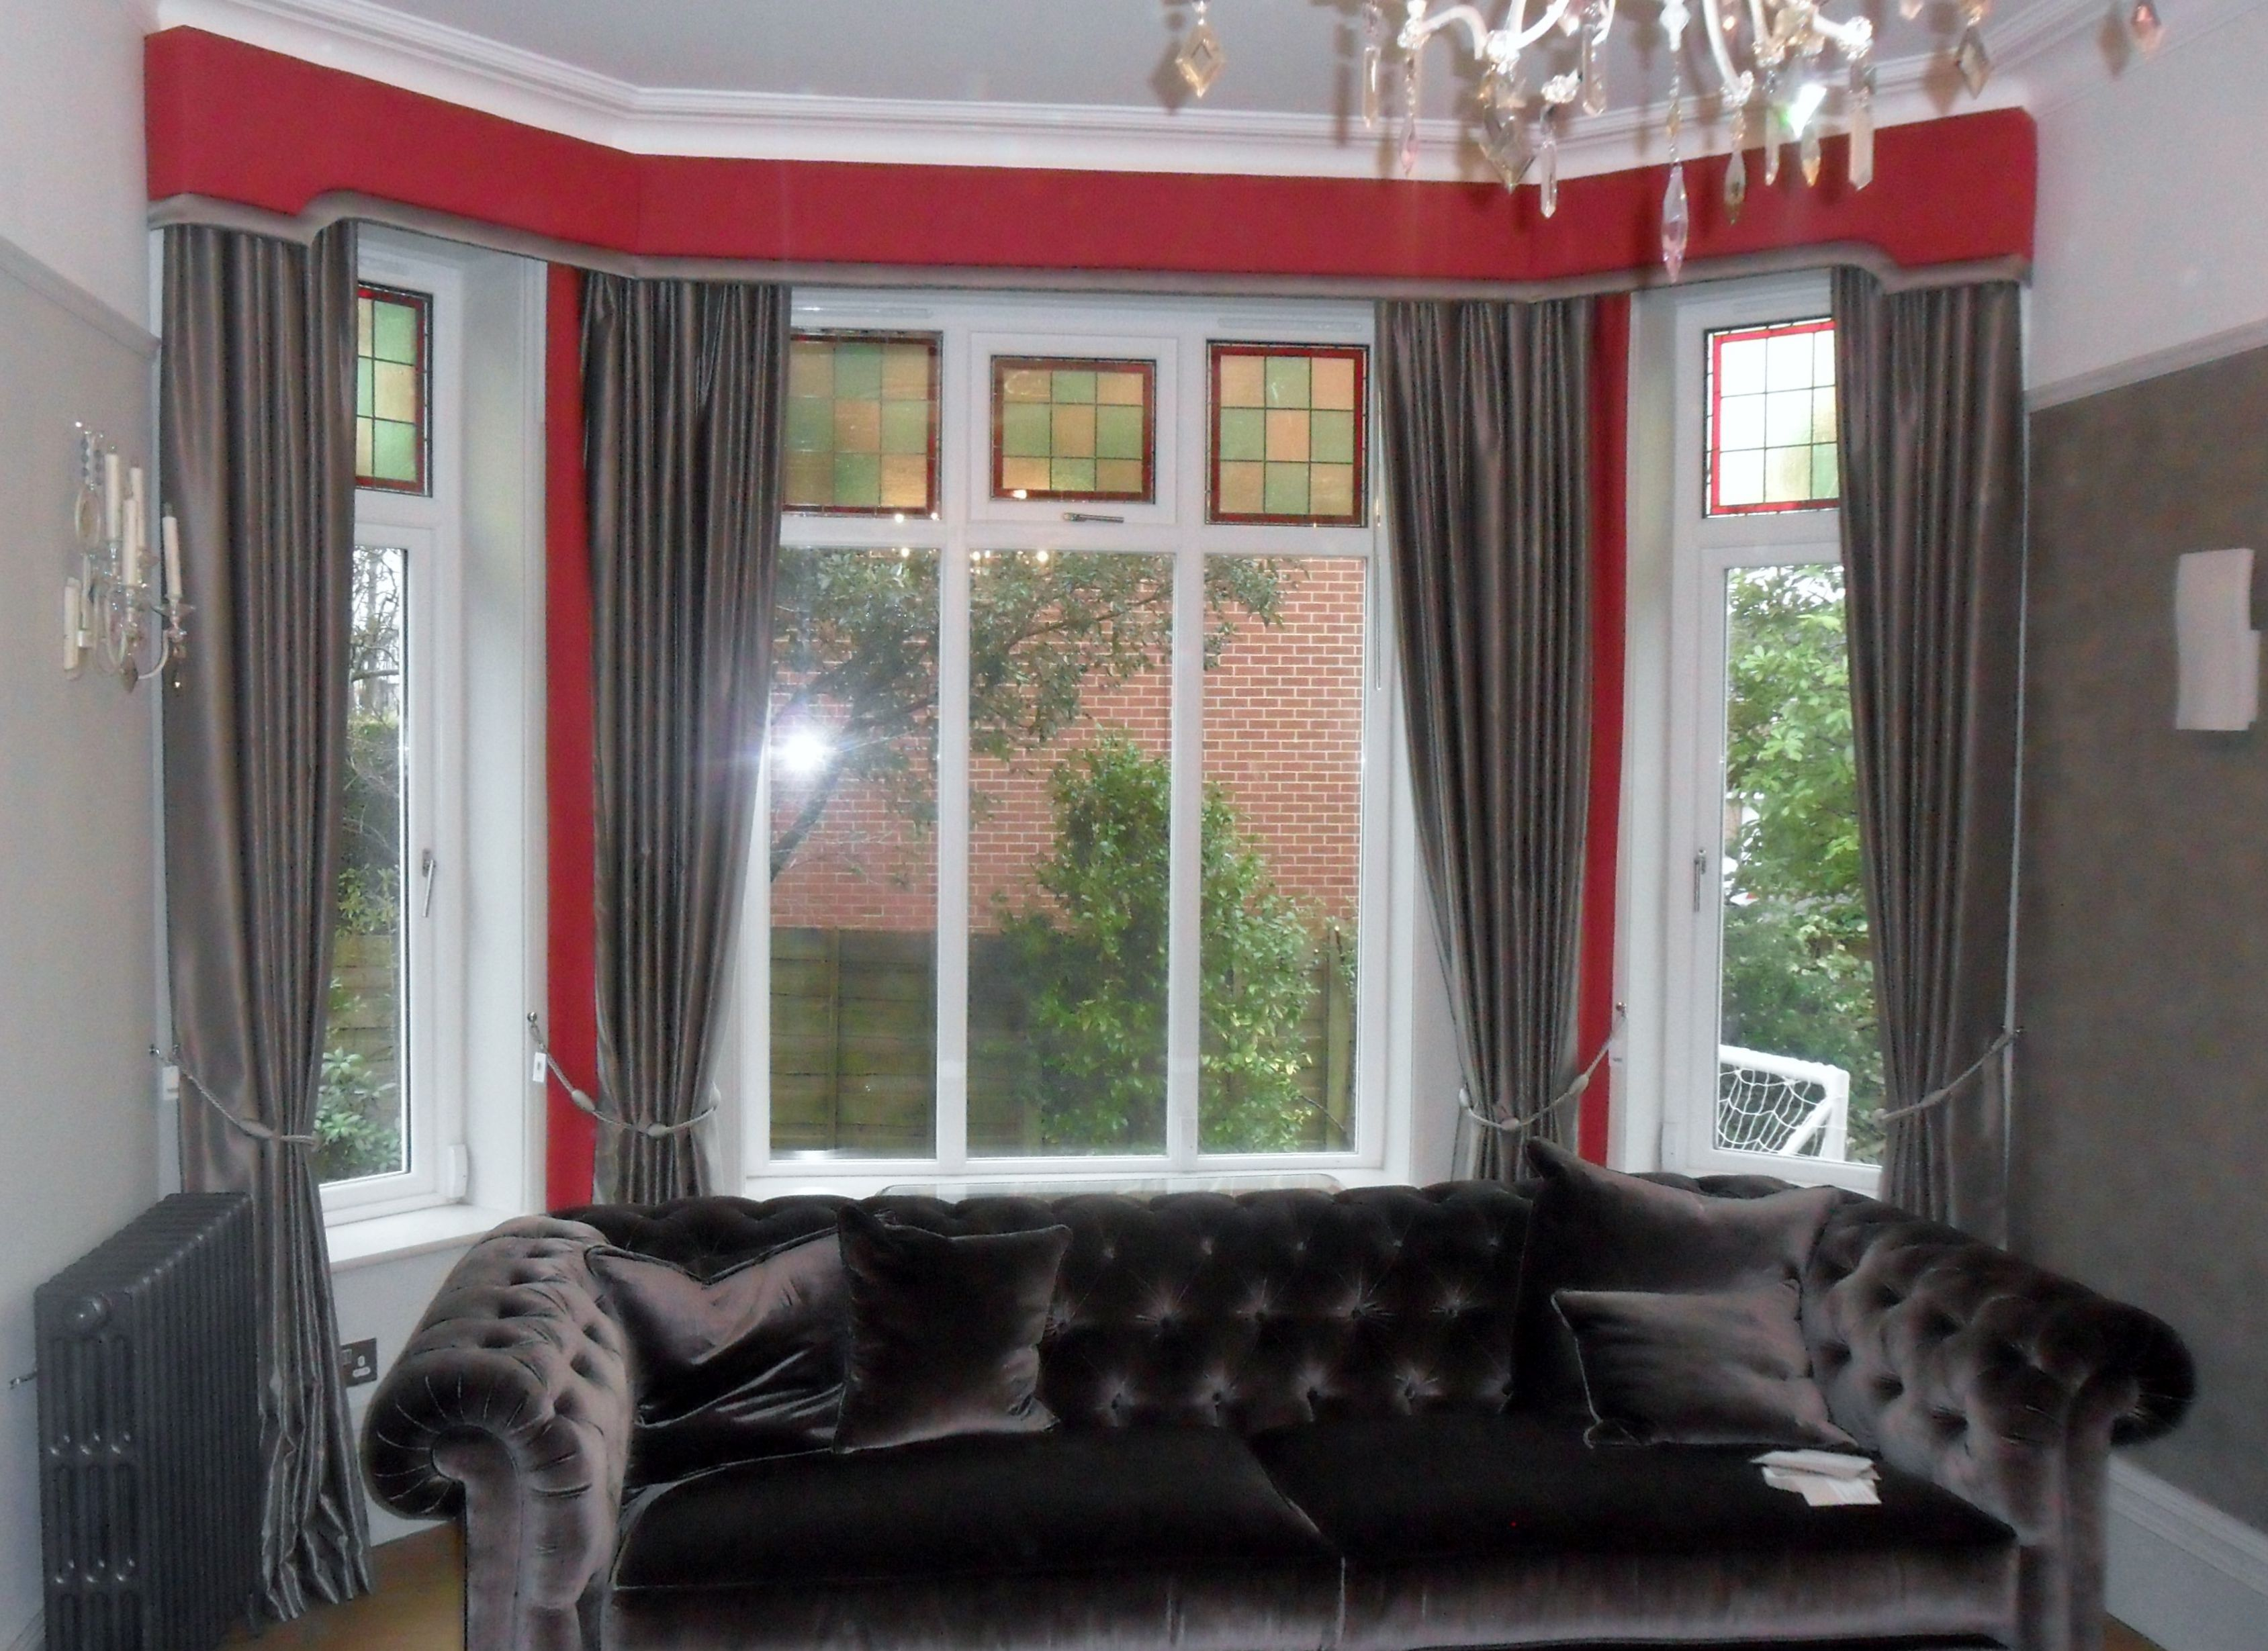 Elegant bay window pelmet with shaped ends and contrasting border. These work really well with the coordinating curtains.